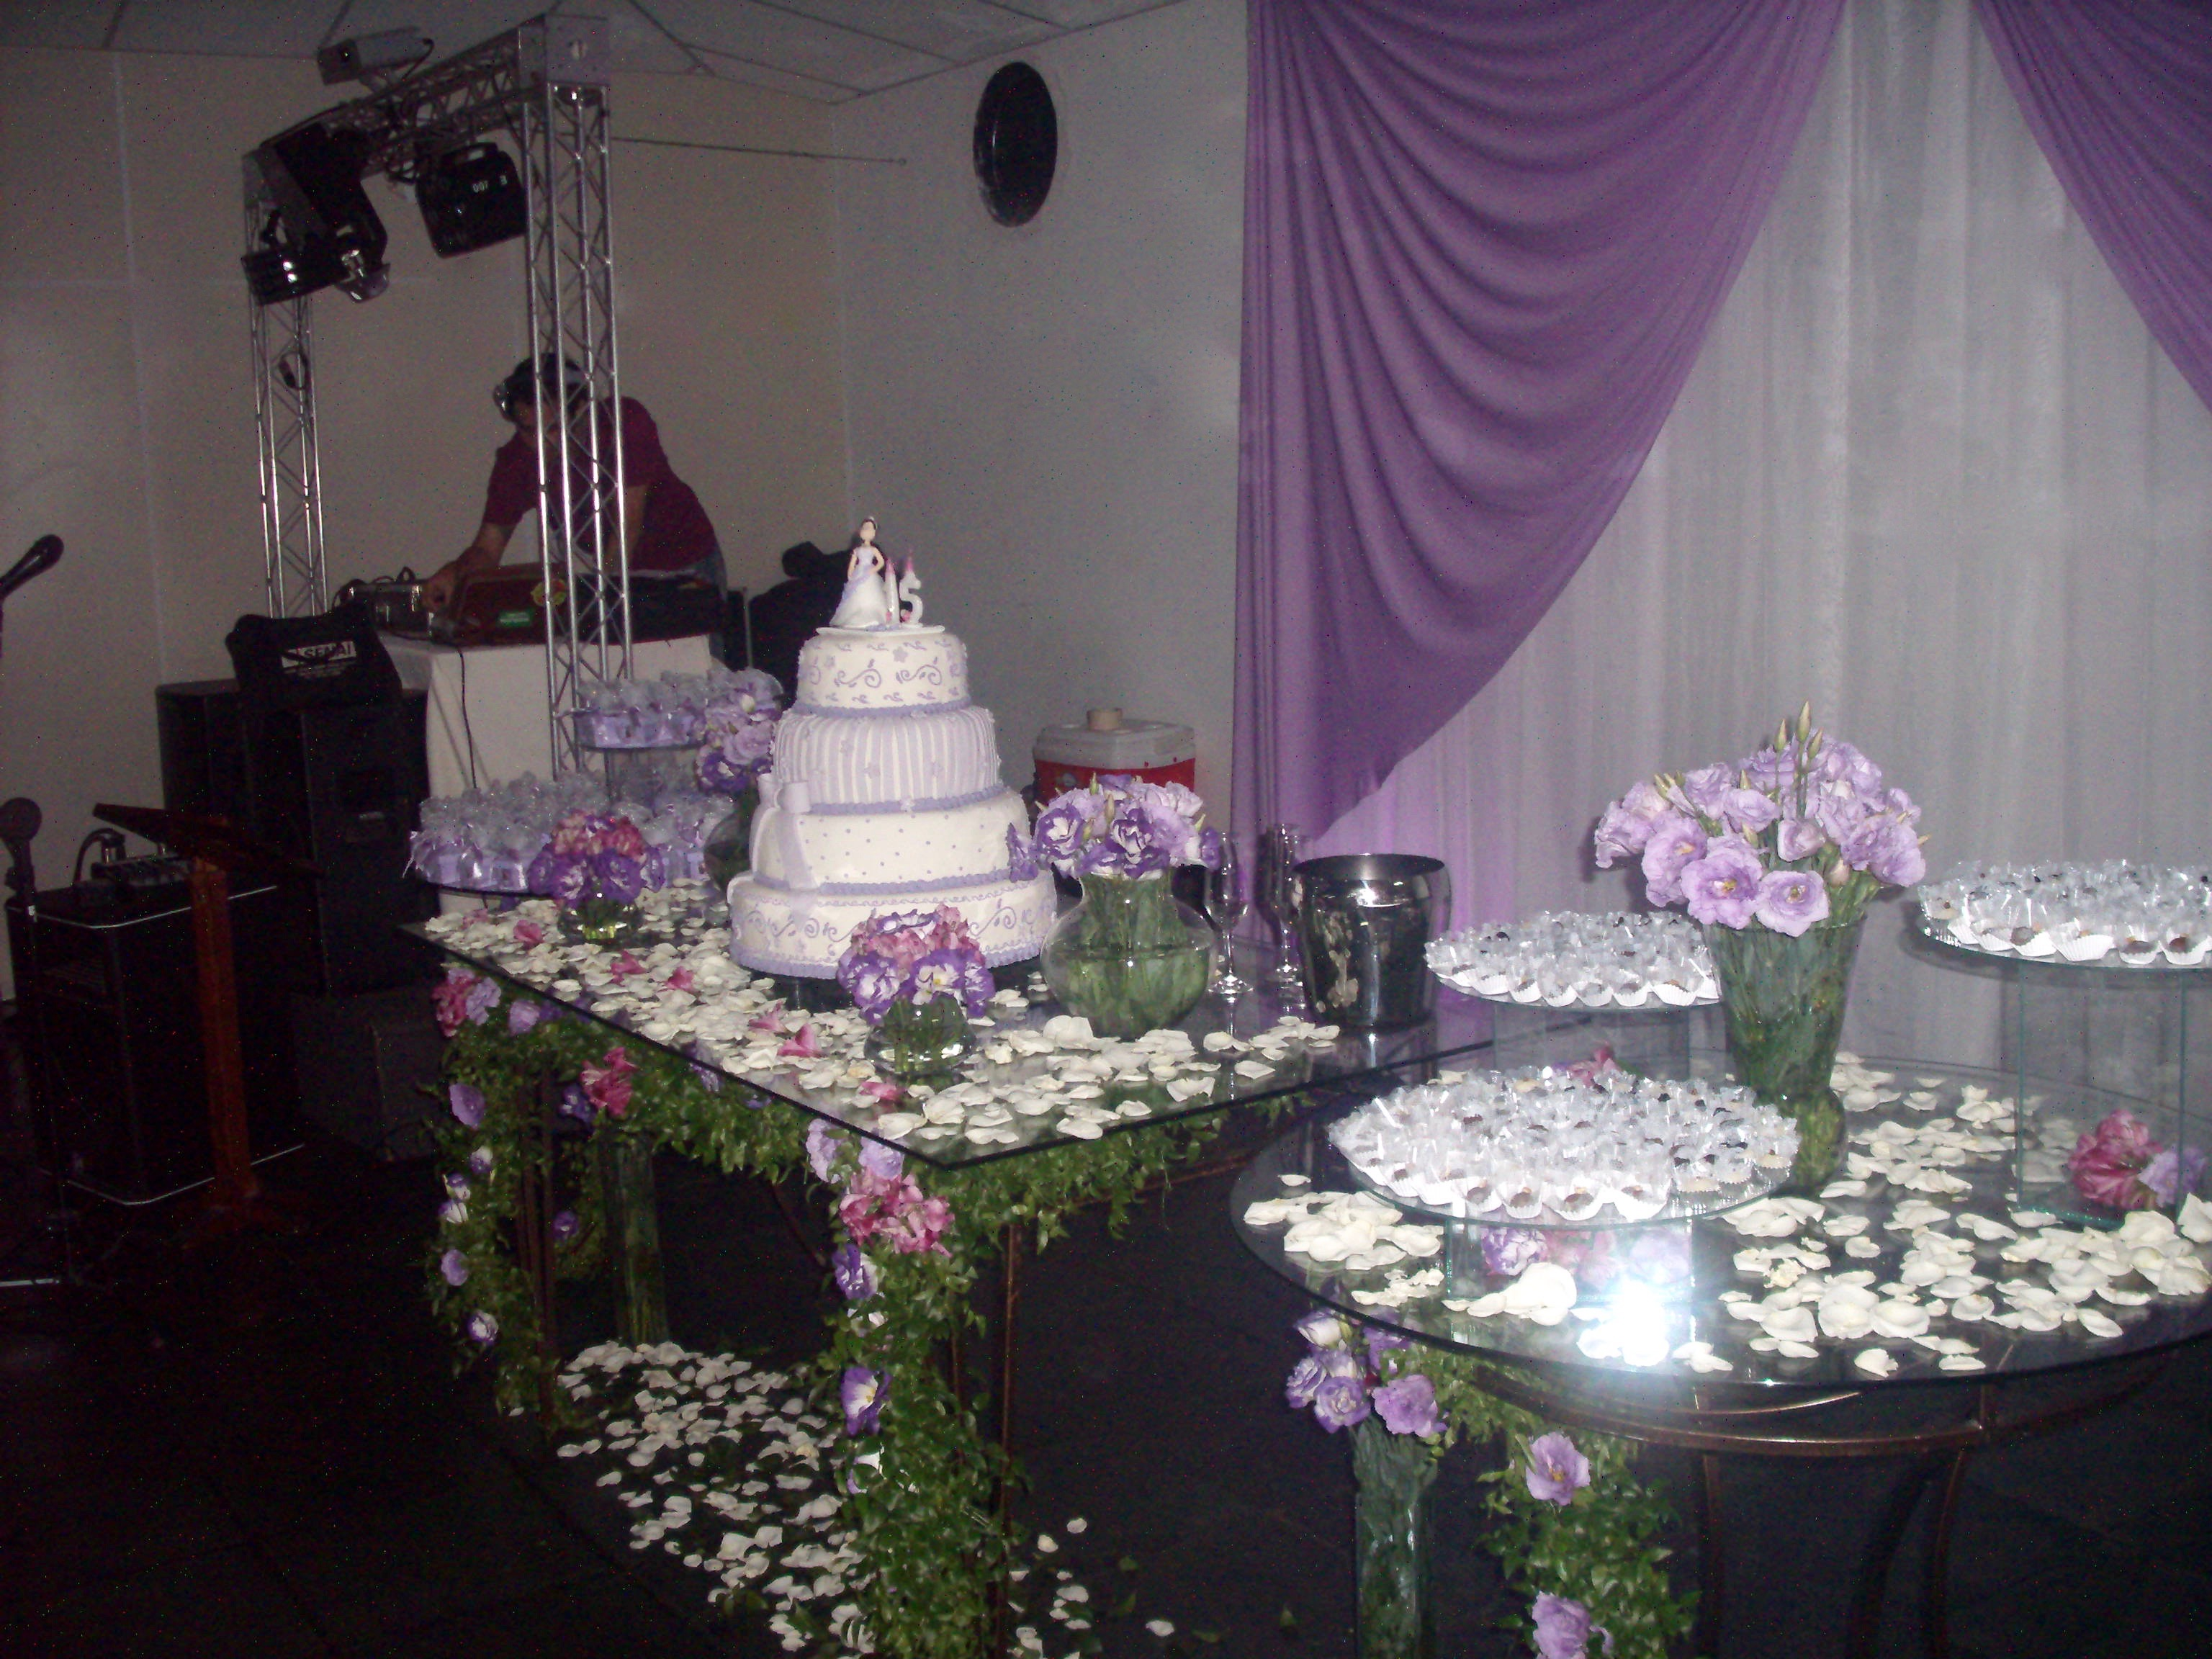 Evento Buffet Nono Soares